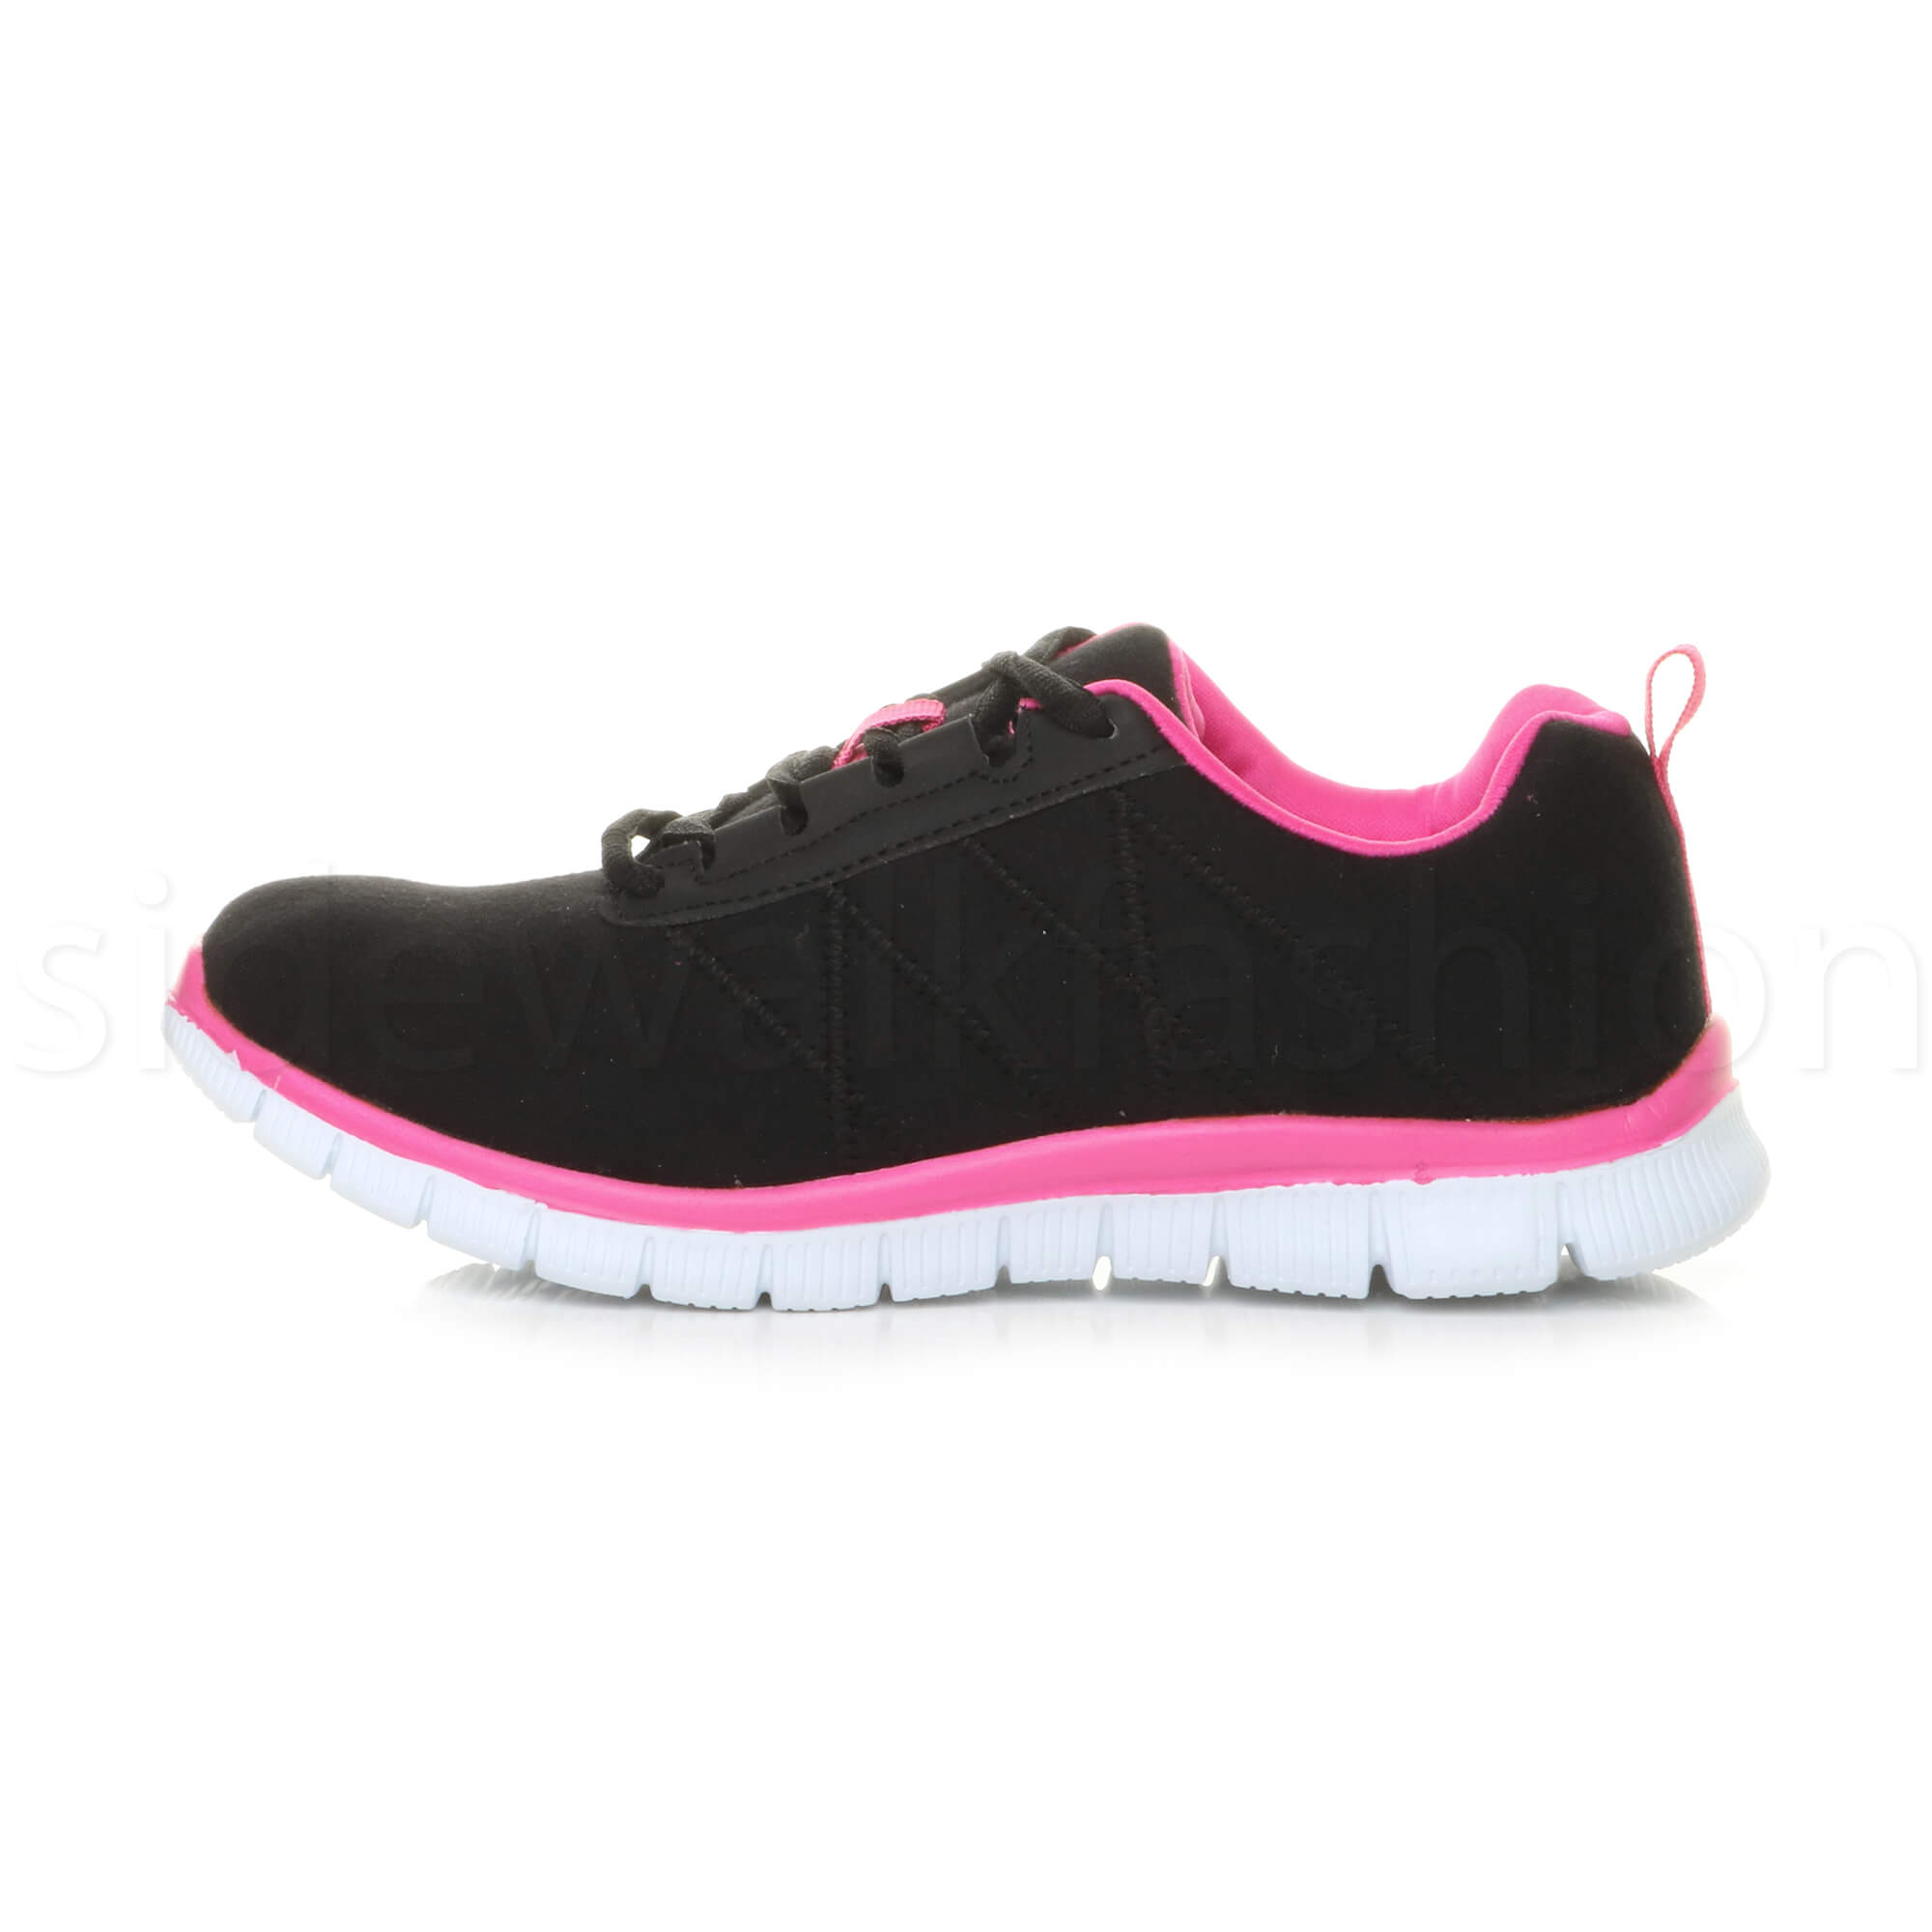 Womens-ladies-comfort-memory-foam-lace-up-trainers-activewear-sneakers-gym-shoes thumbnail 15